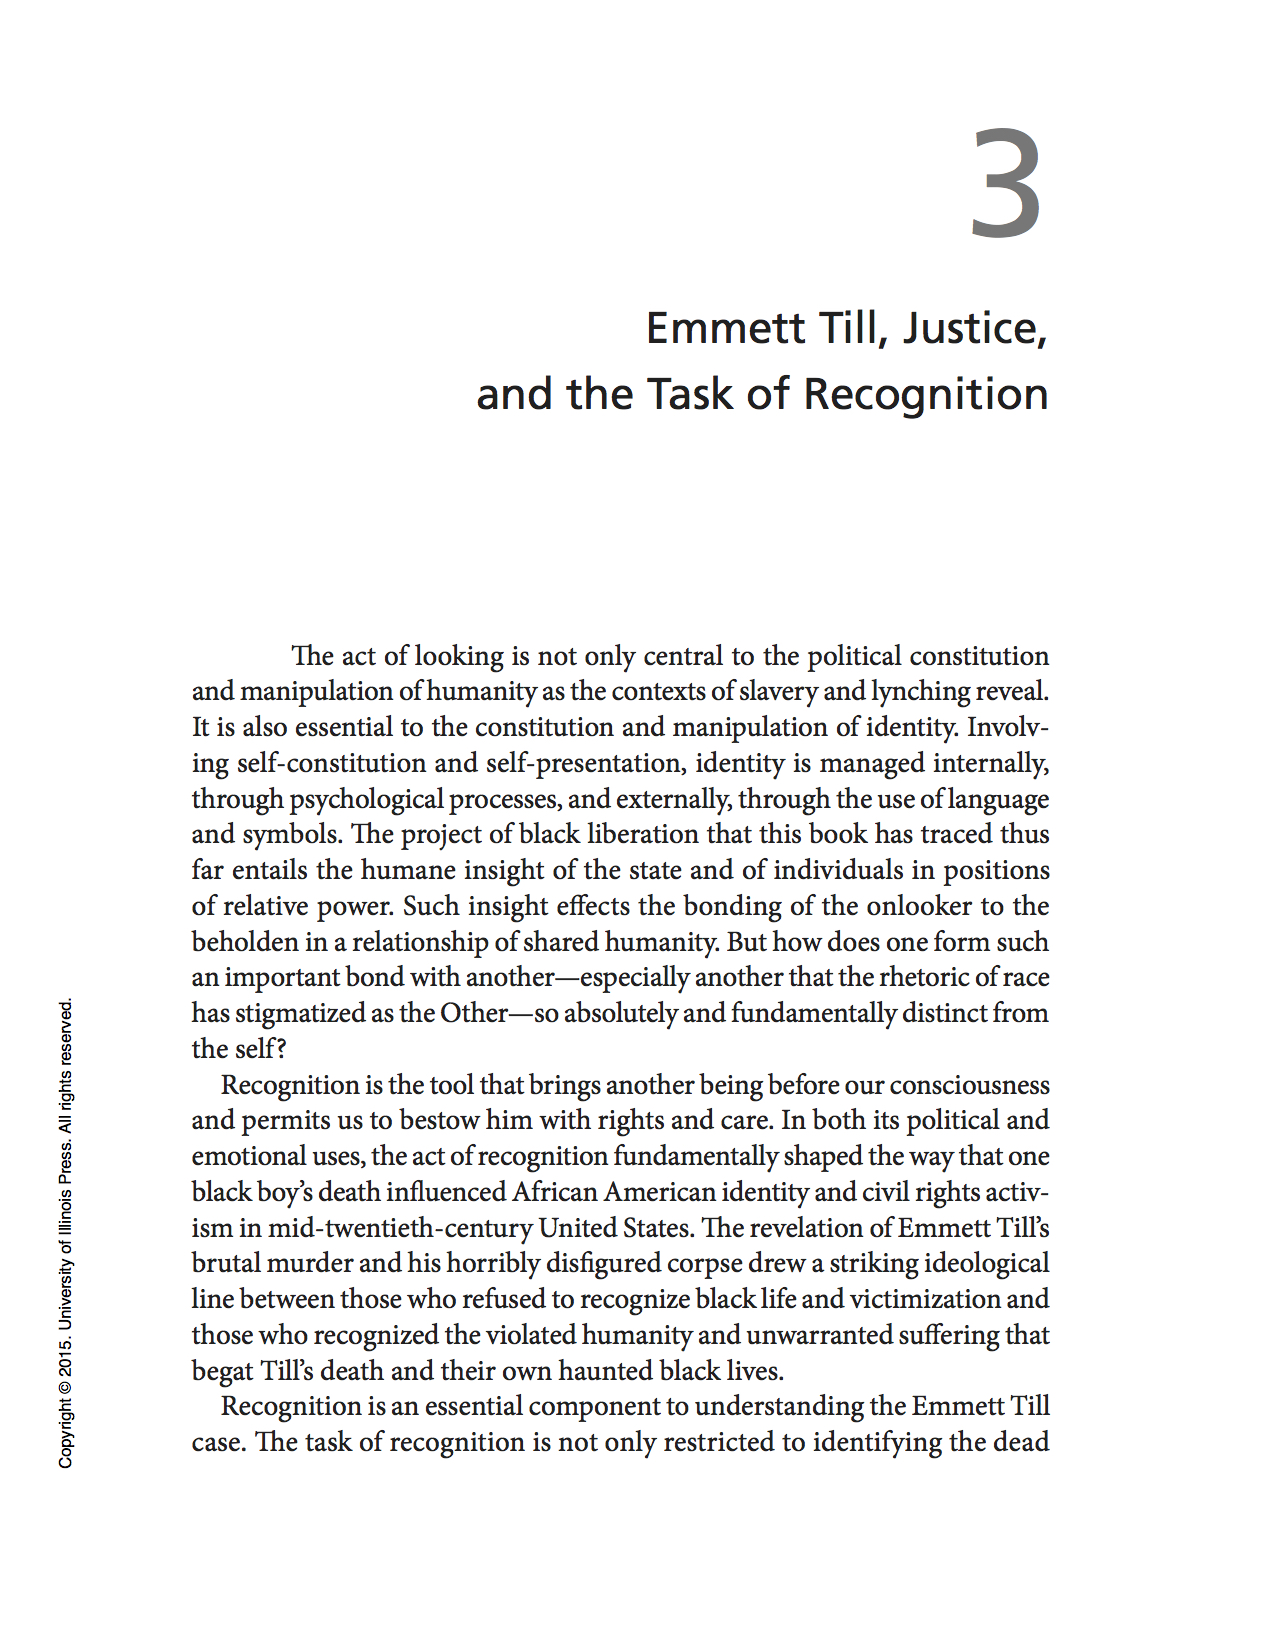 "Courtney R. Baker, "" Emmett Till, Justice, and the Task of Recognition ,""  Humane Insight: Looking at Images of African American Suffering and Death  (Urbana-Champaign, IL: University of Illinois Press, 2015). 69-93, n. 129-32."